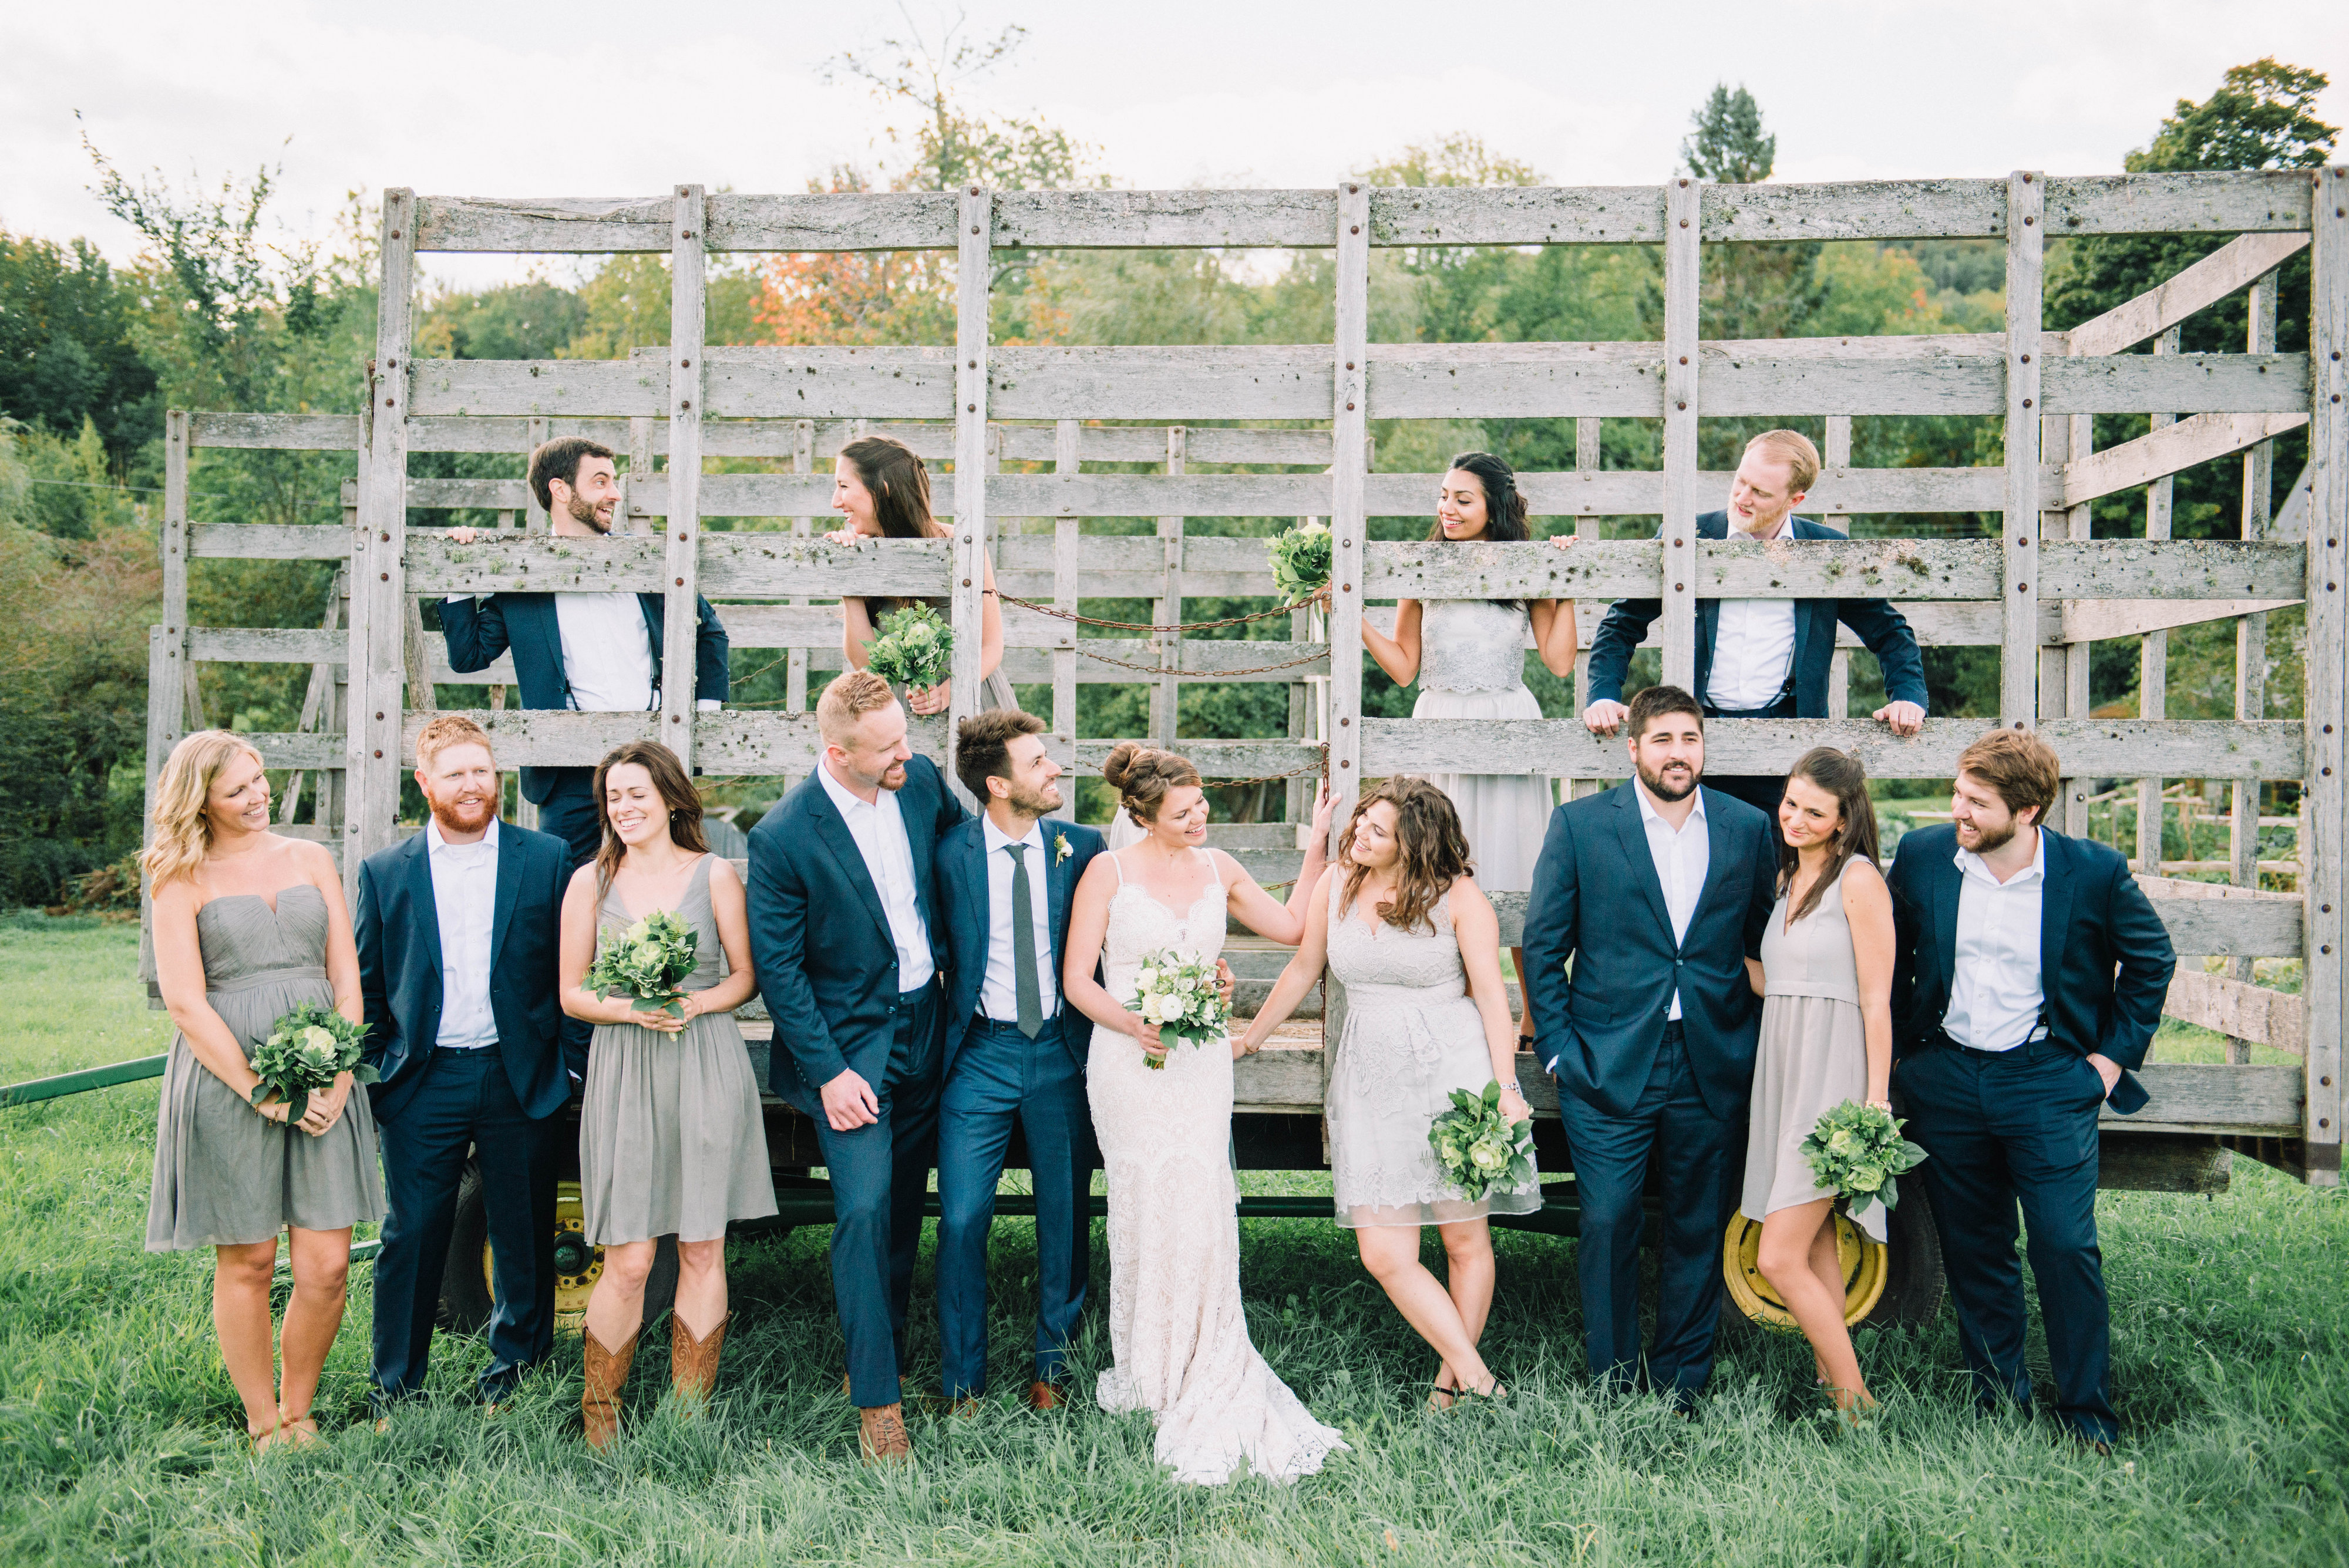 Kevin-and-Paola_Navy-Wedding-Suit